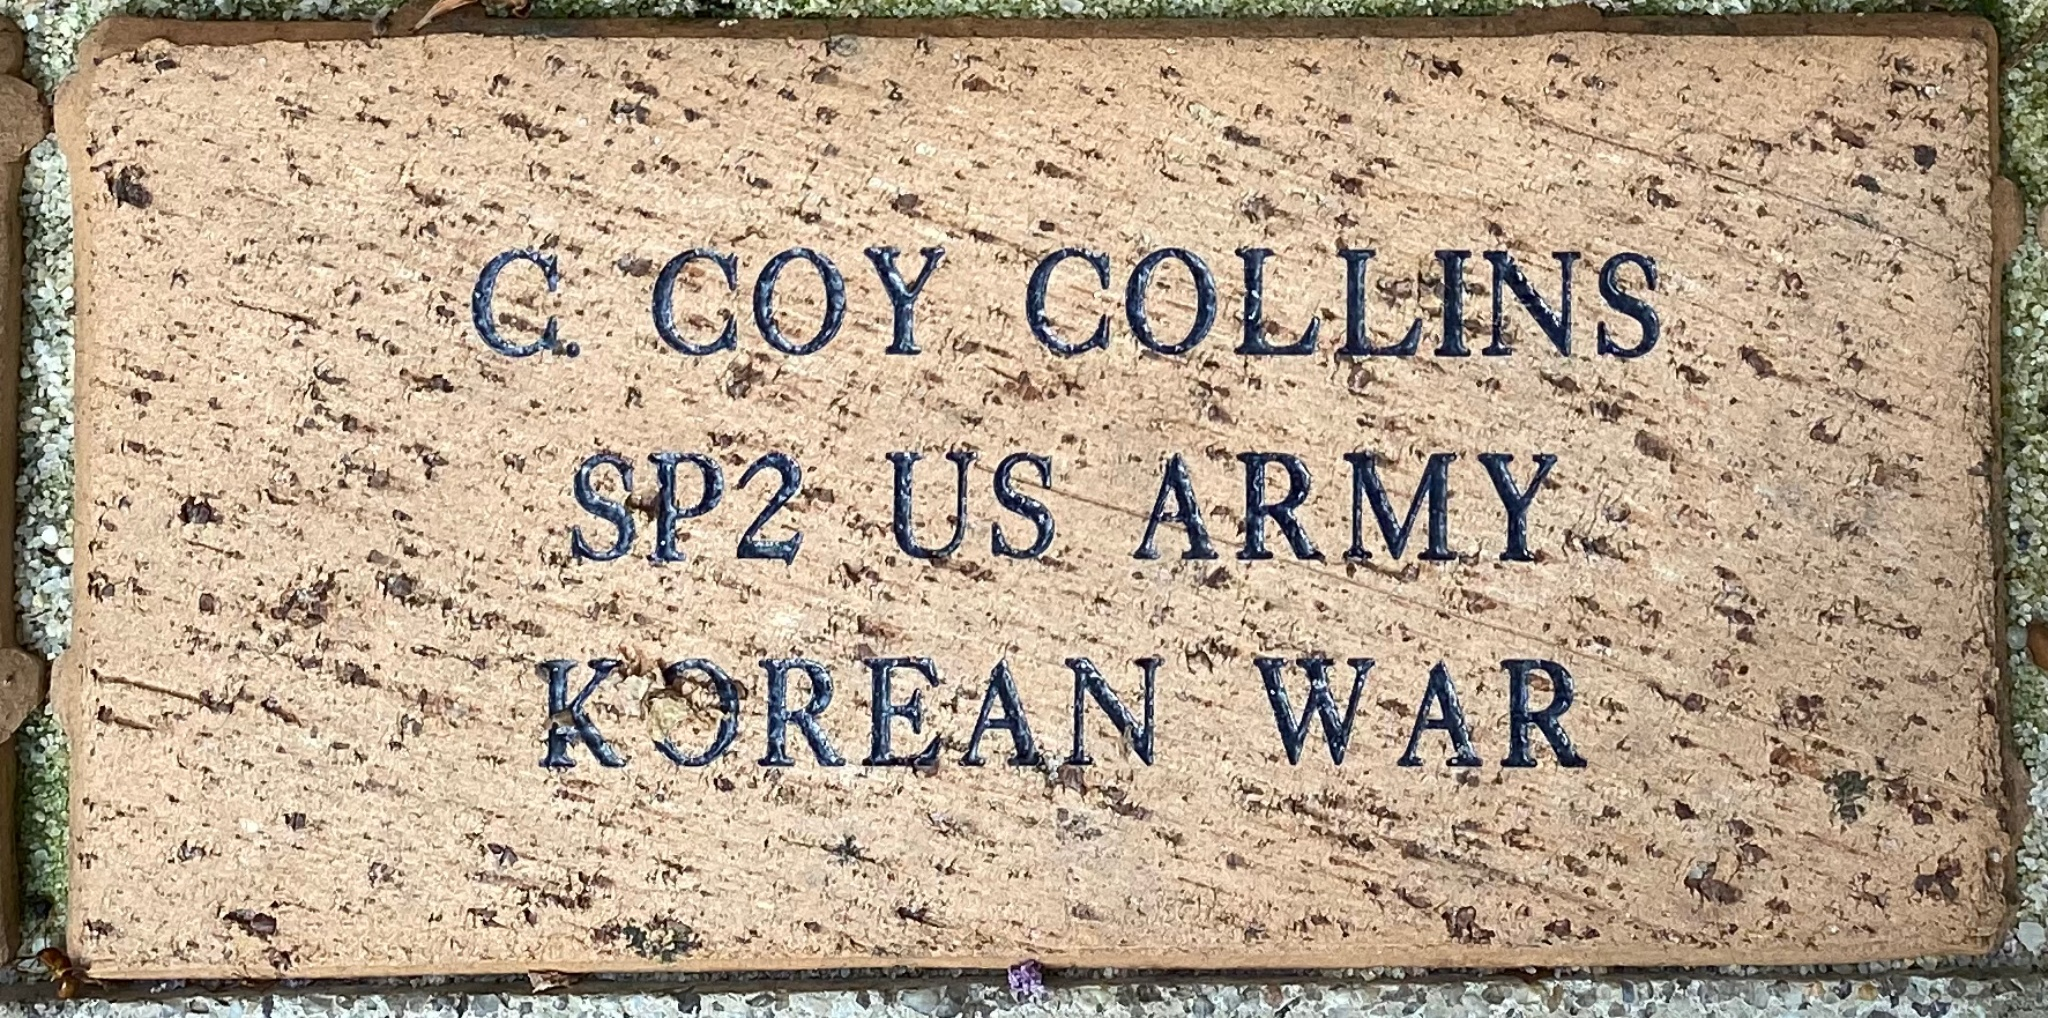 C. COY COLLINS SP2 US ARMY KOREAN WAR